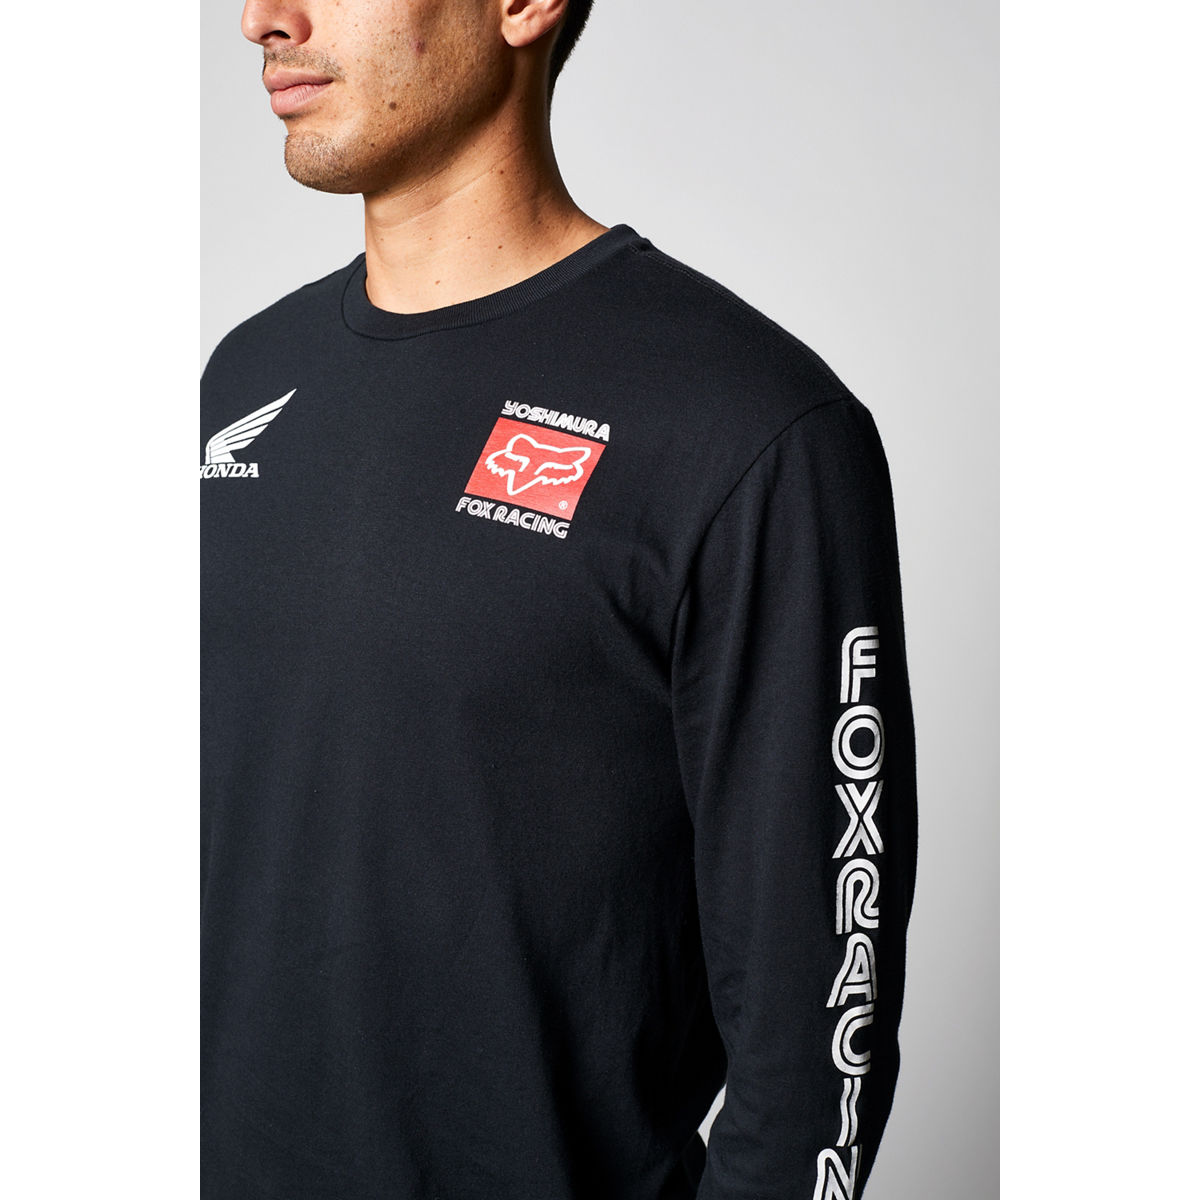 26693-001 Fox Racing Yoshimura Honda Long Sleeve Tee Black T-Shirt